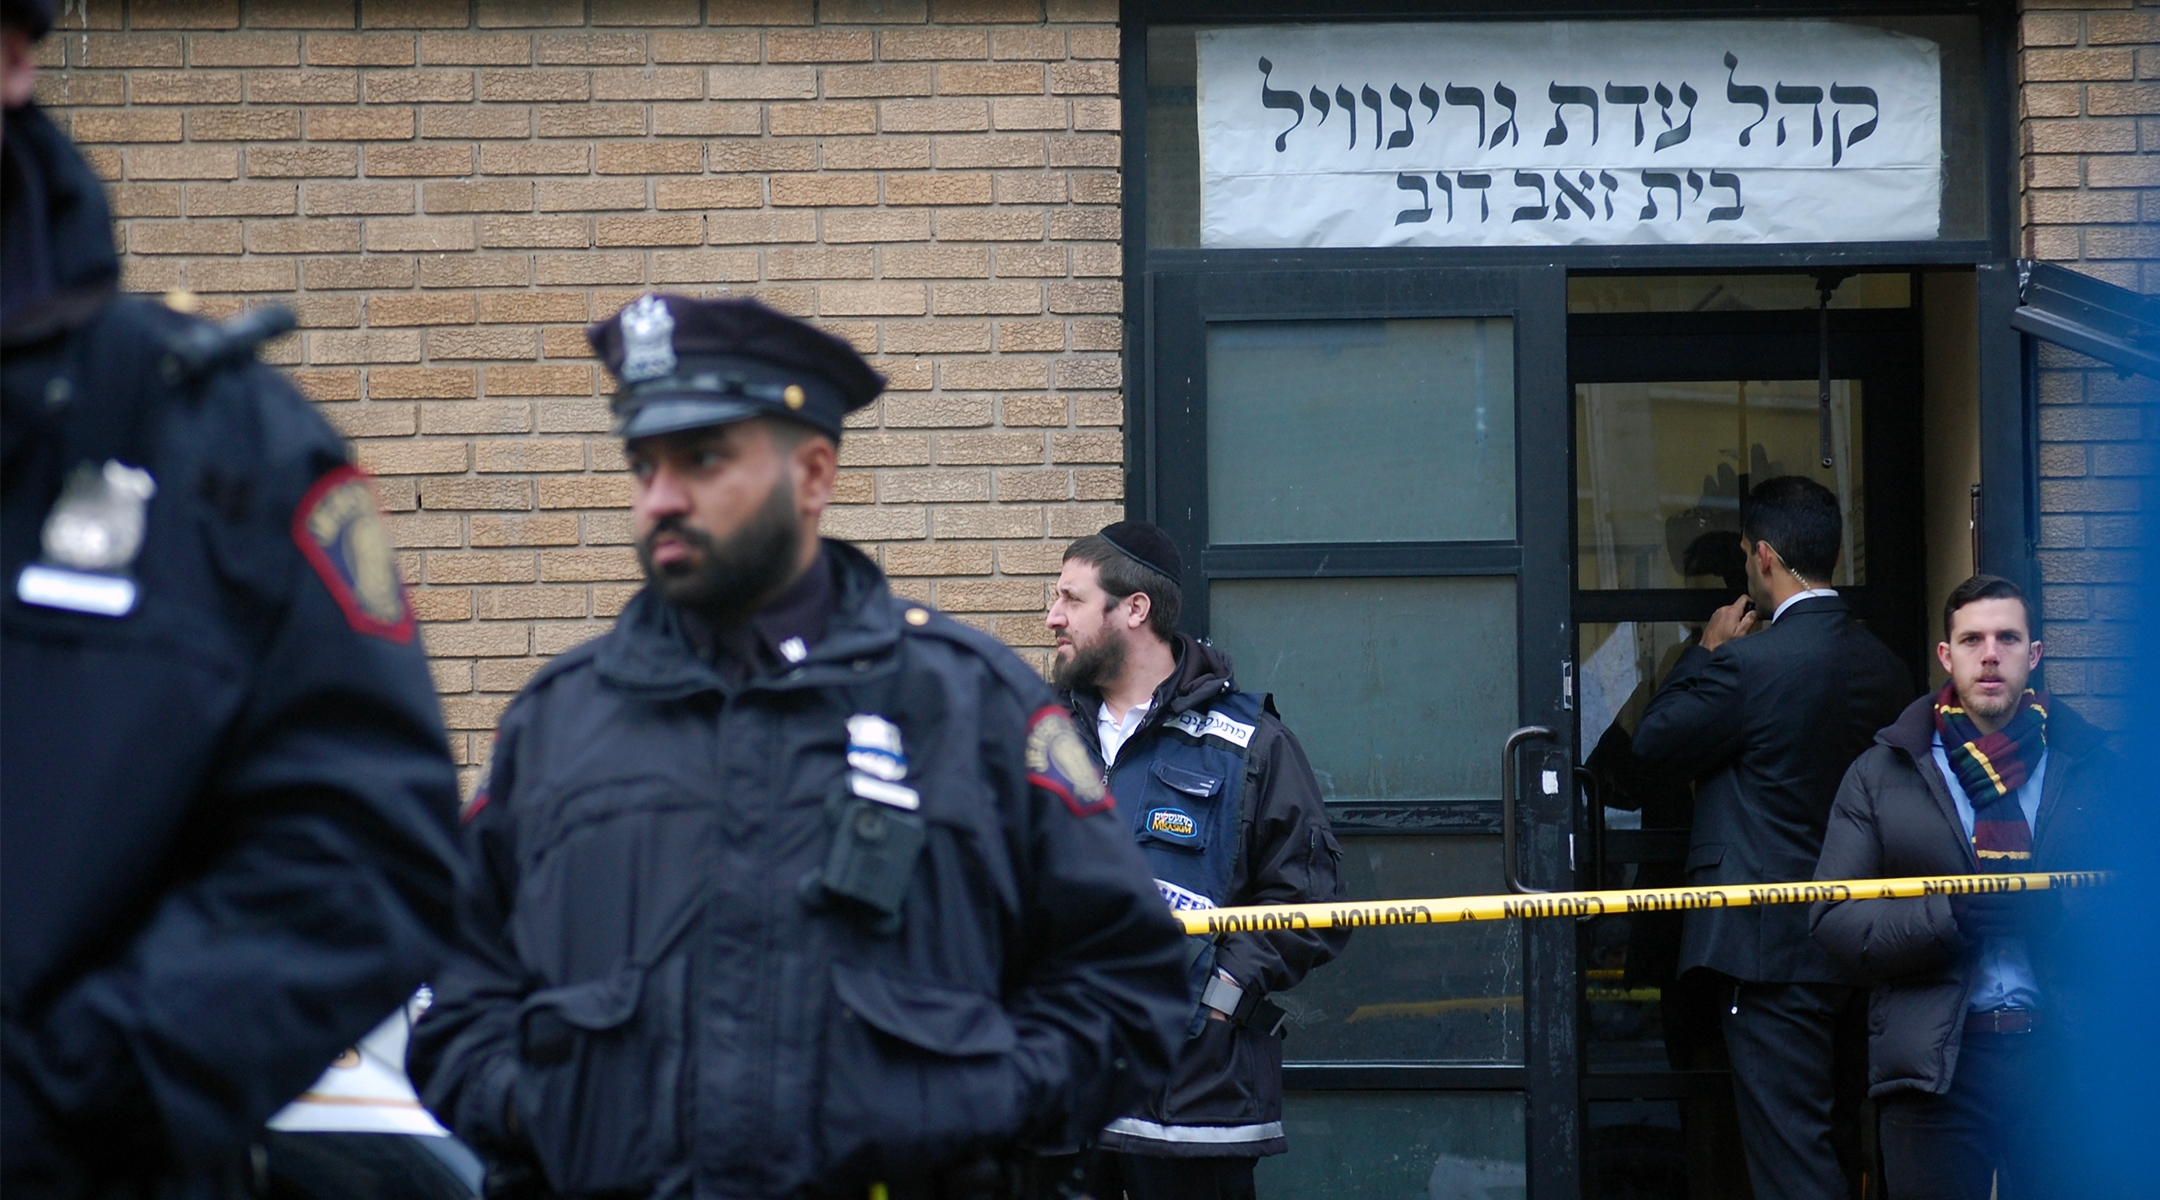 Hasidim, government officials and police officers stand in front of the K'hal Adas Greenville synagogue next door to JC Kosher Supermarket in Jersey City, the site of a deadly shooting, Dec. 11, 2019. (Laura E. Adkins/JTA)